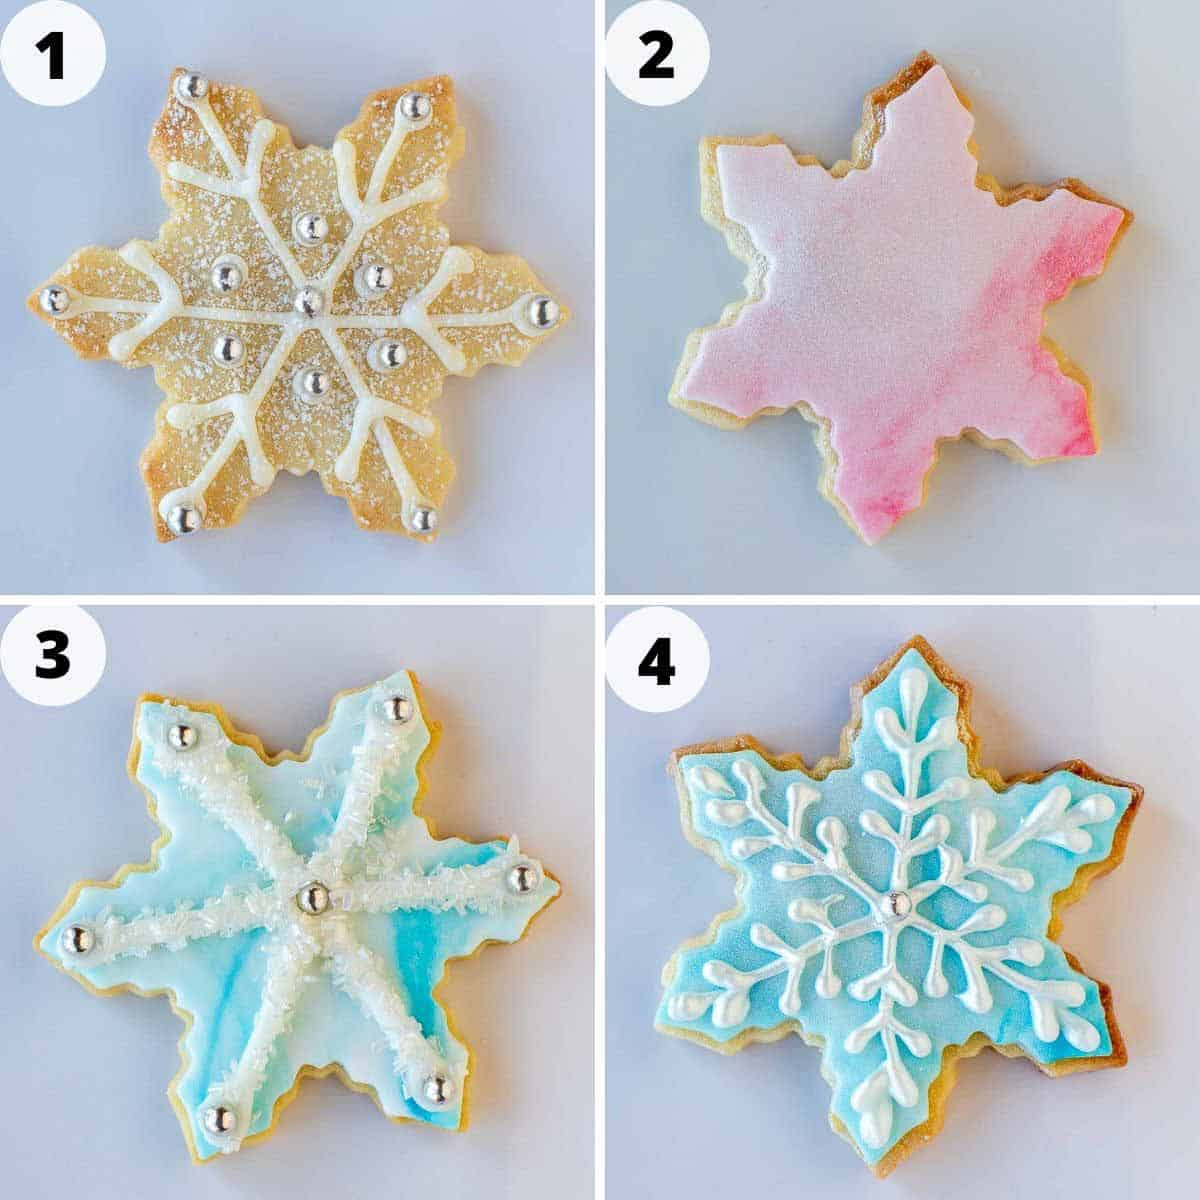 four-step photo collage showing four different ways to decorate sugar cookies.